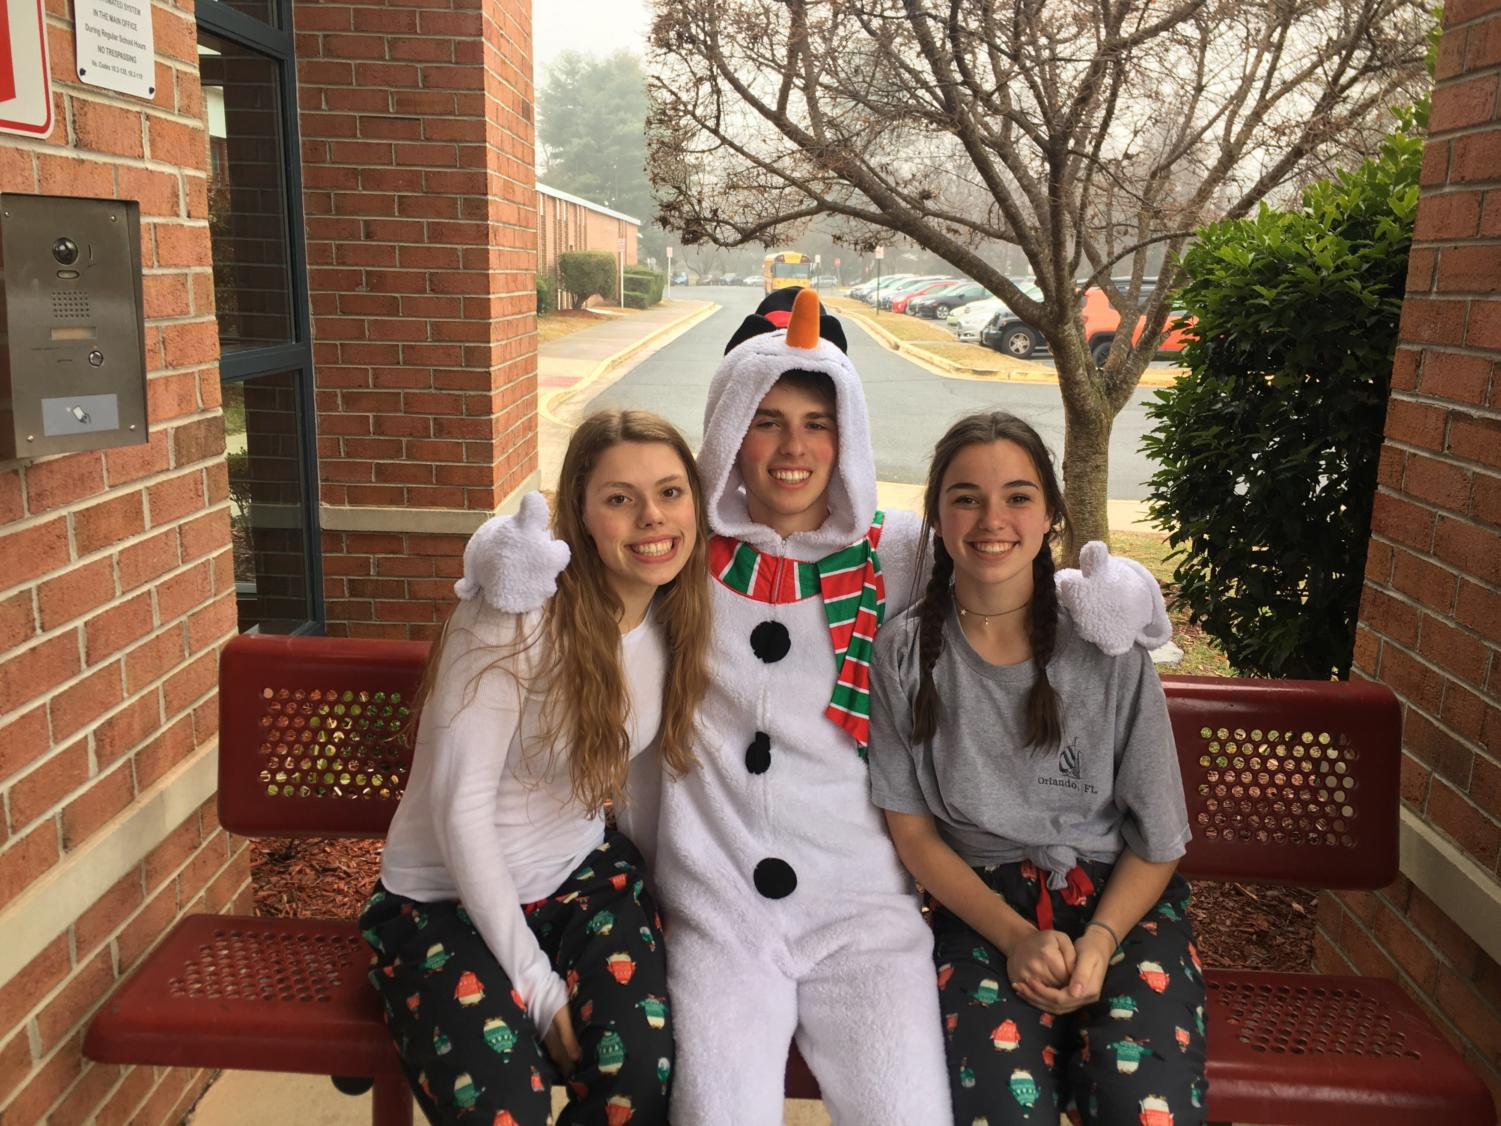 Sophomore Skye Sunderhauf (left), junior Zach Anderson (middle), and sophomore Katie Romhilt (right) show off their school spirit. They dressed up for comfy clothes day two days before the start of winter break. (Photo by Emily Jackson)